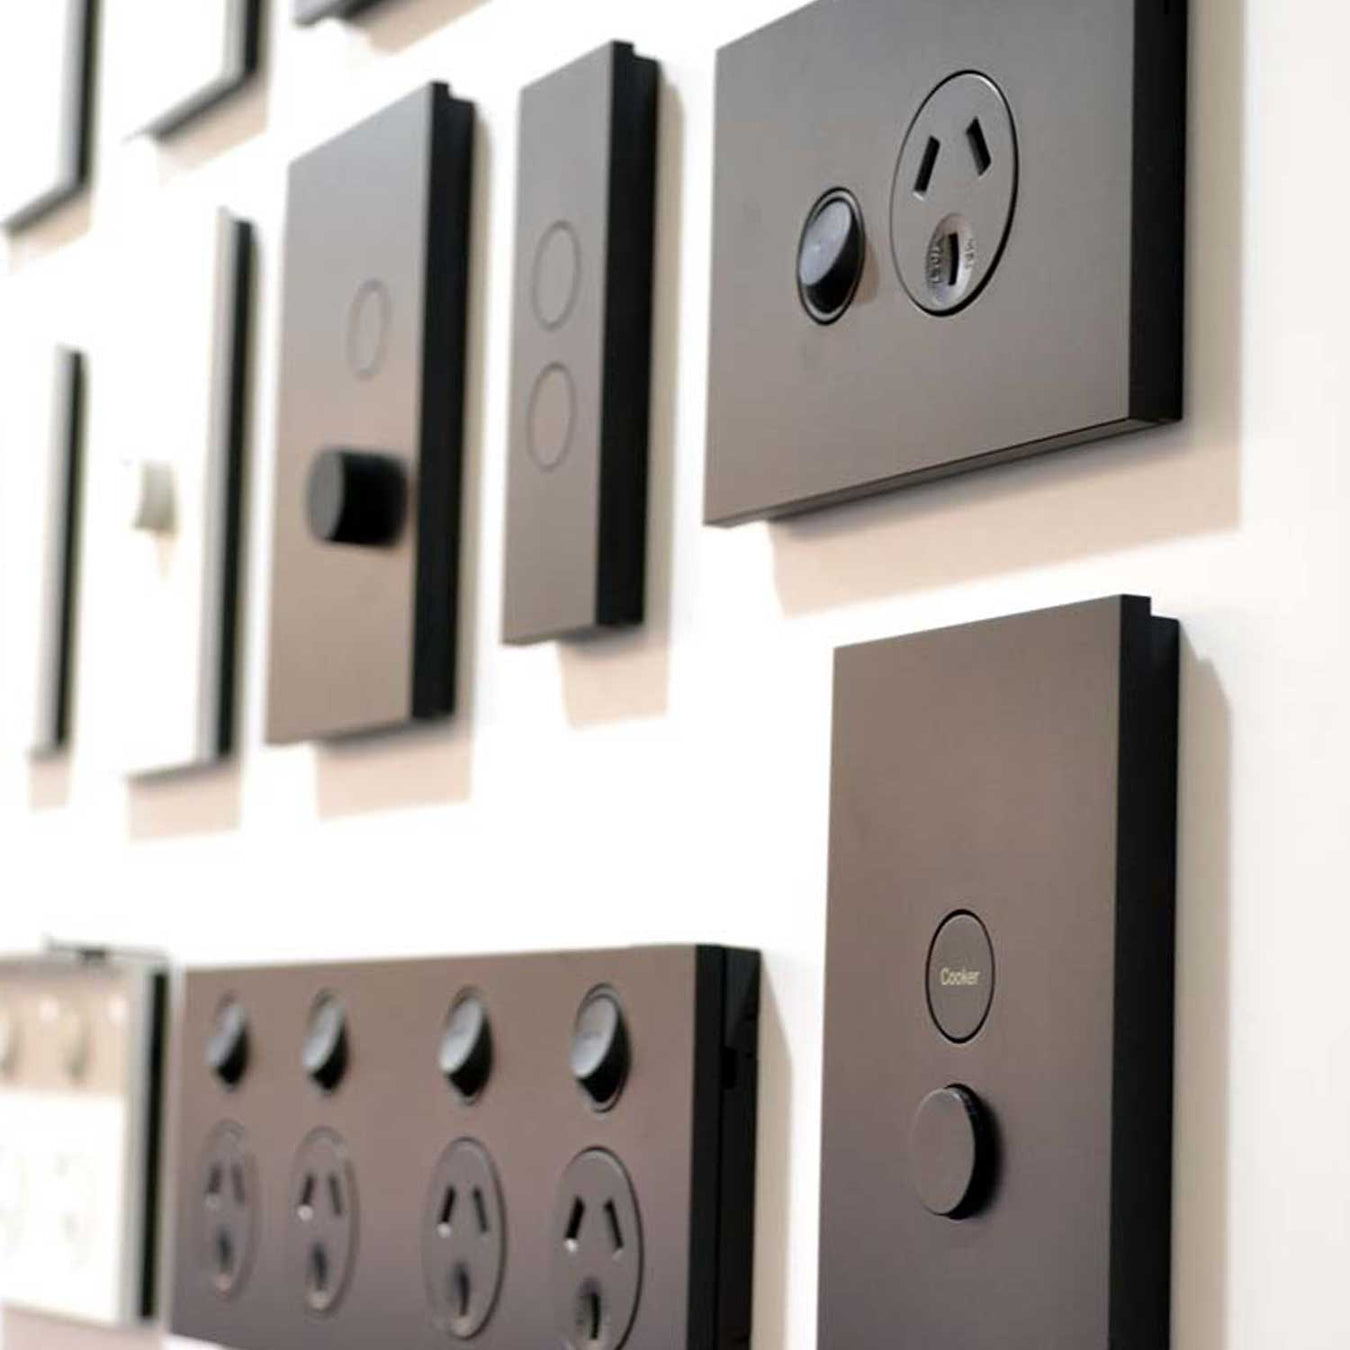 DECORATIVE LIGHT SWITCHES